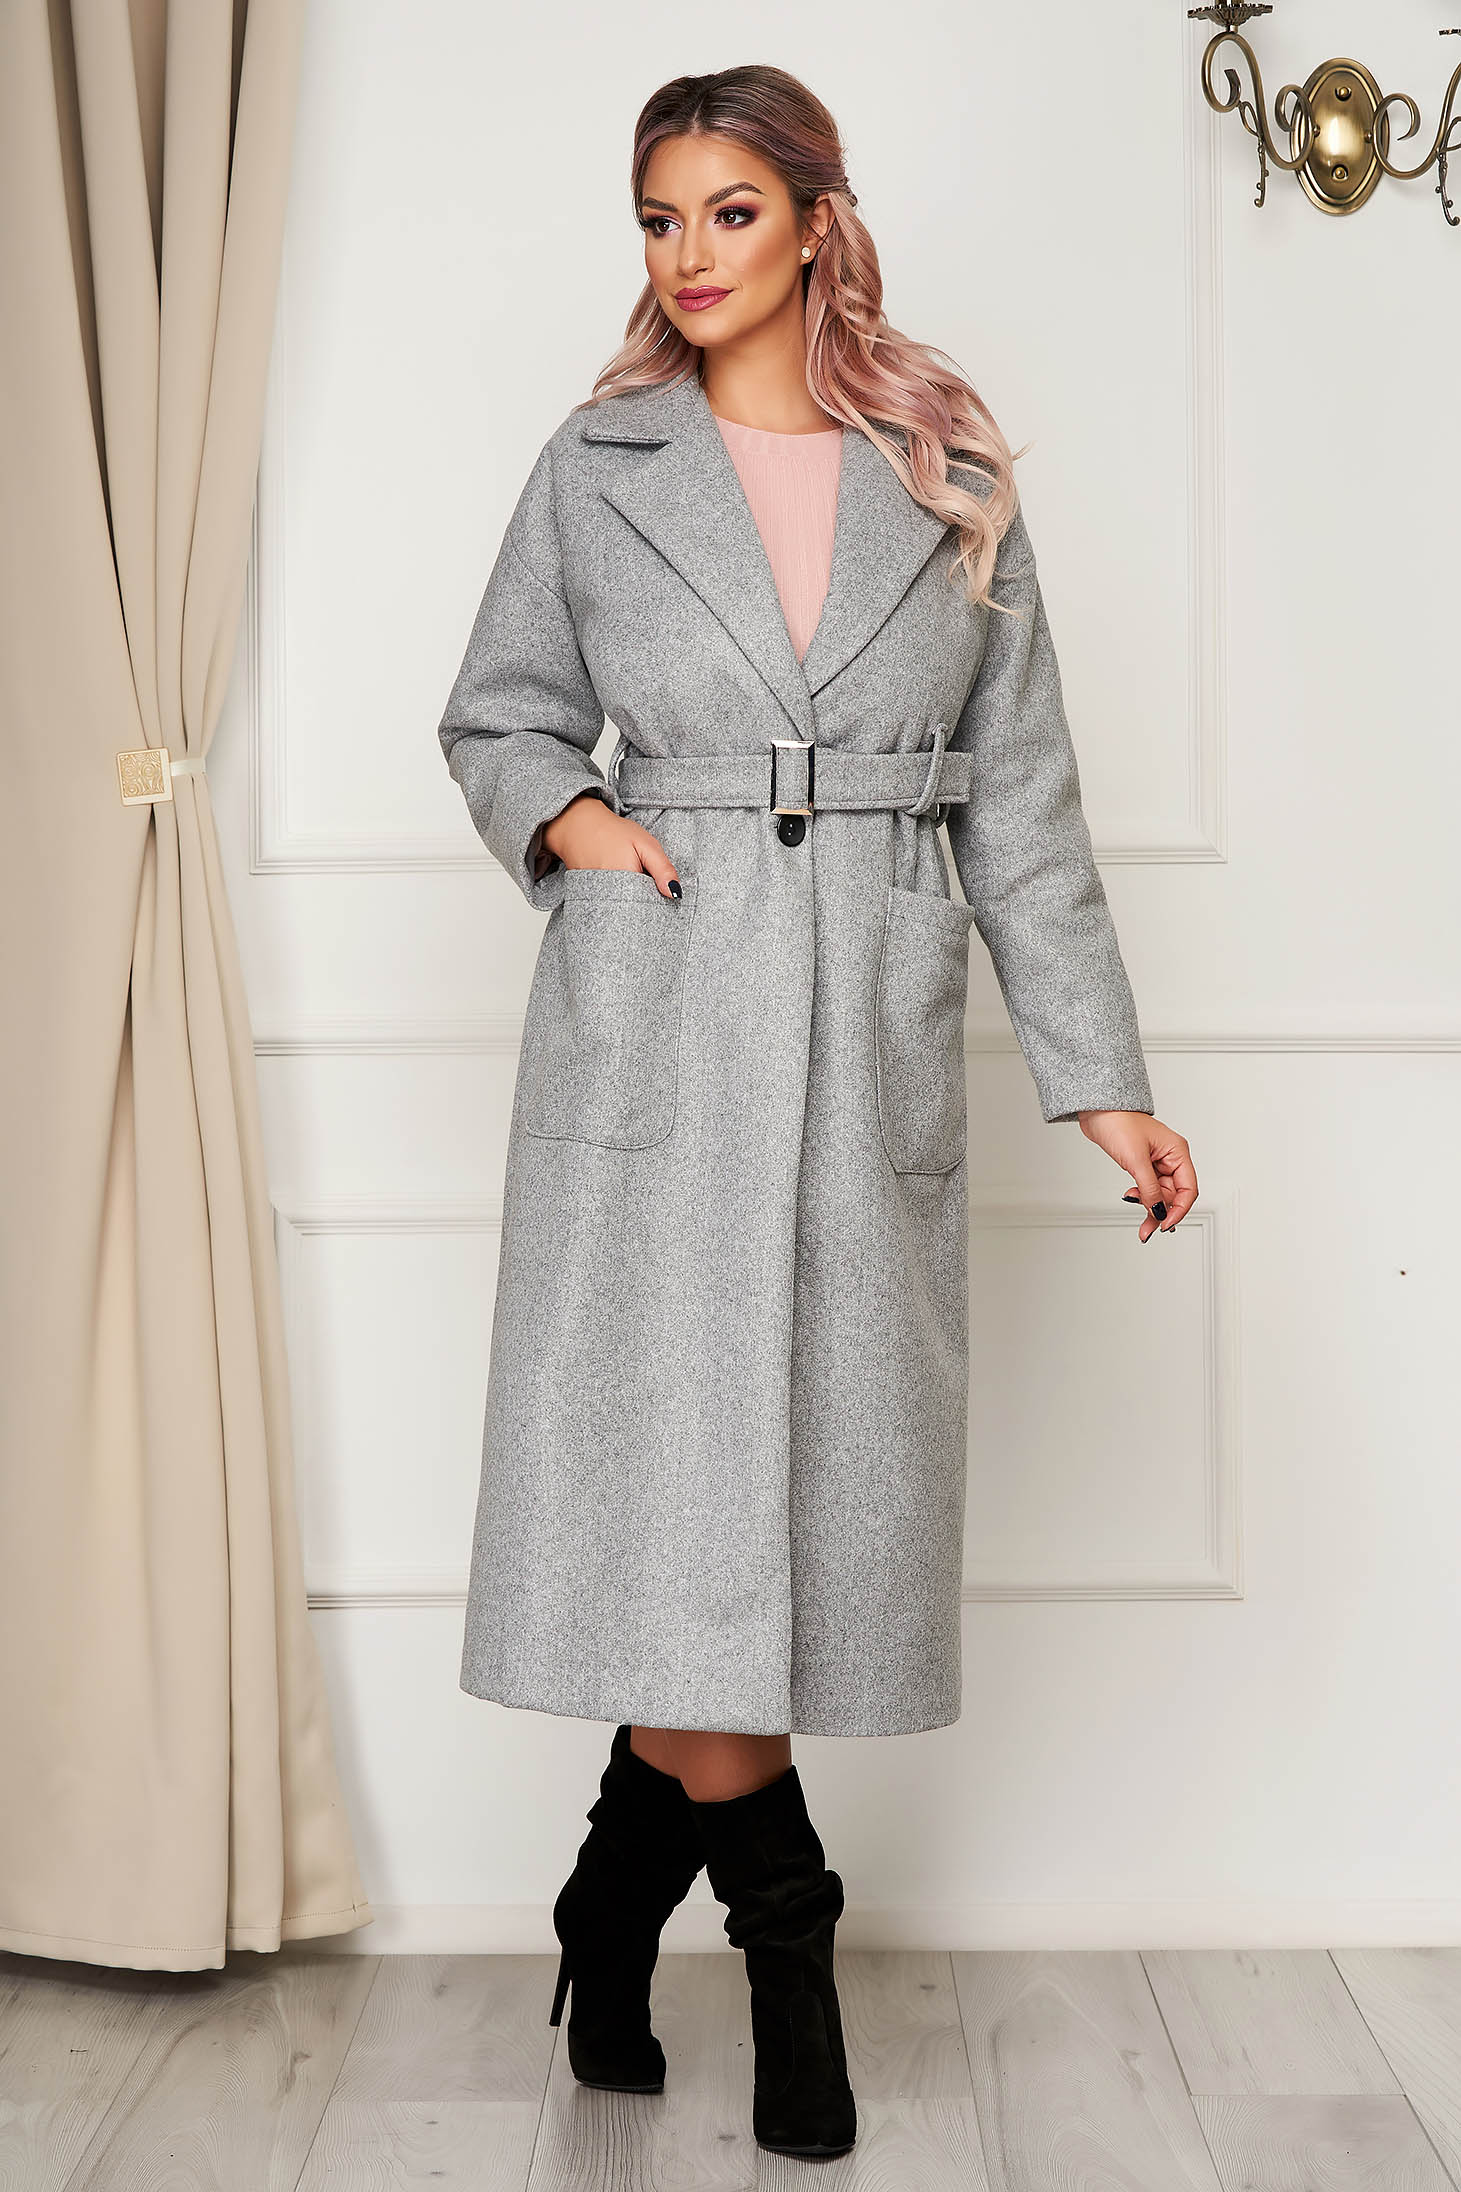 Elegant grey coat straight from non elastic fabric with pockets